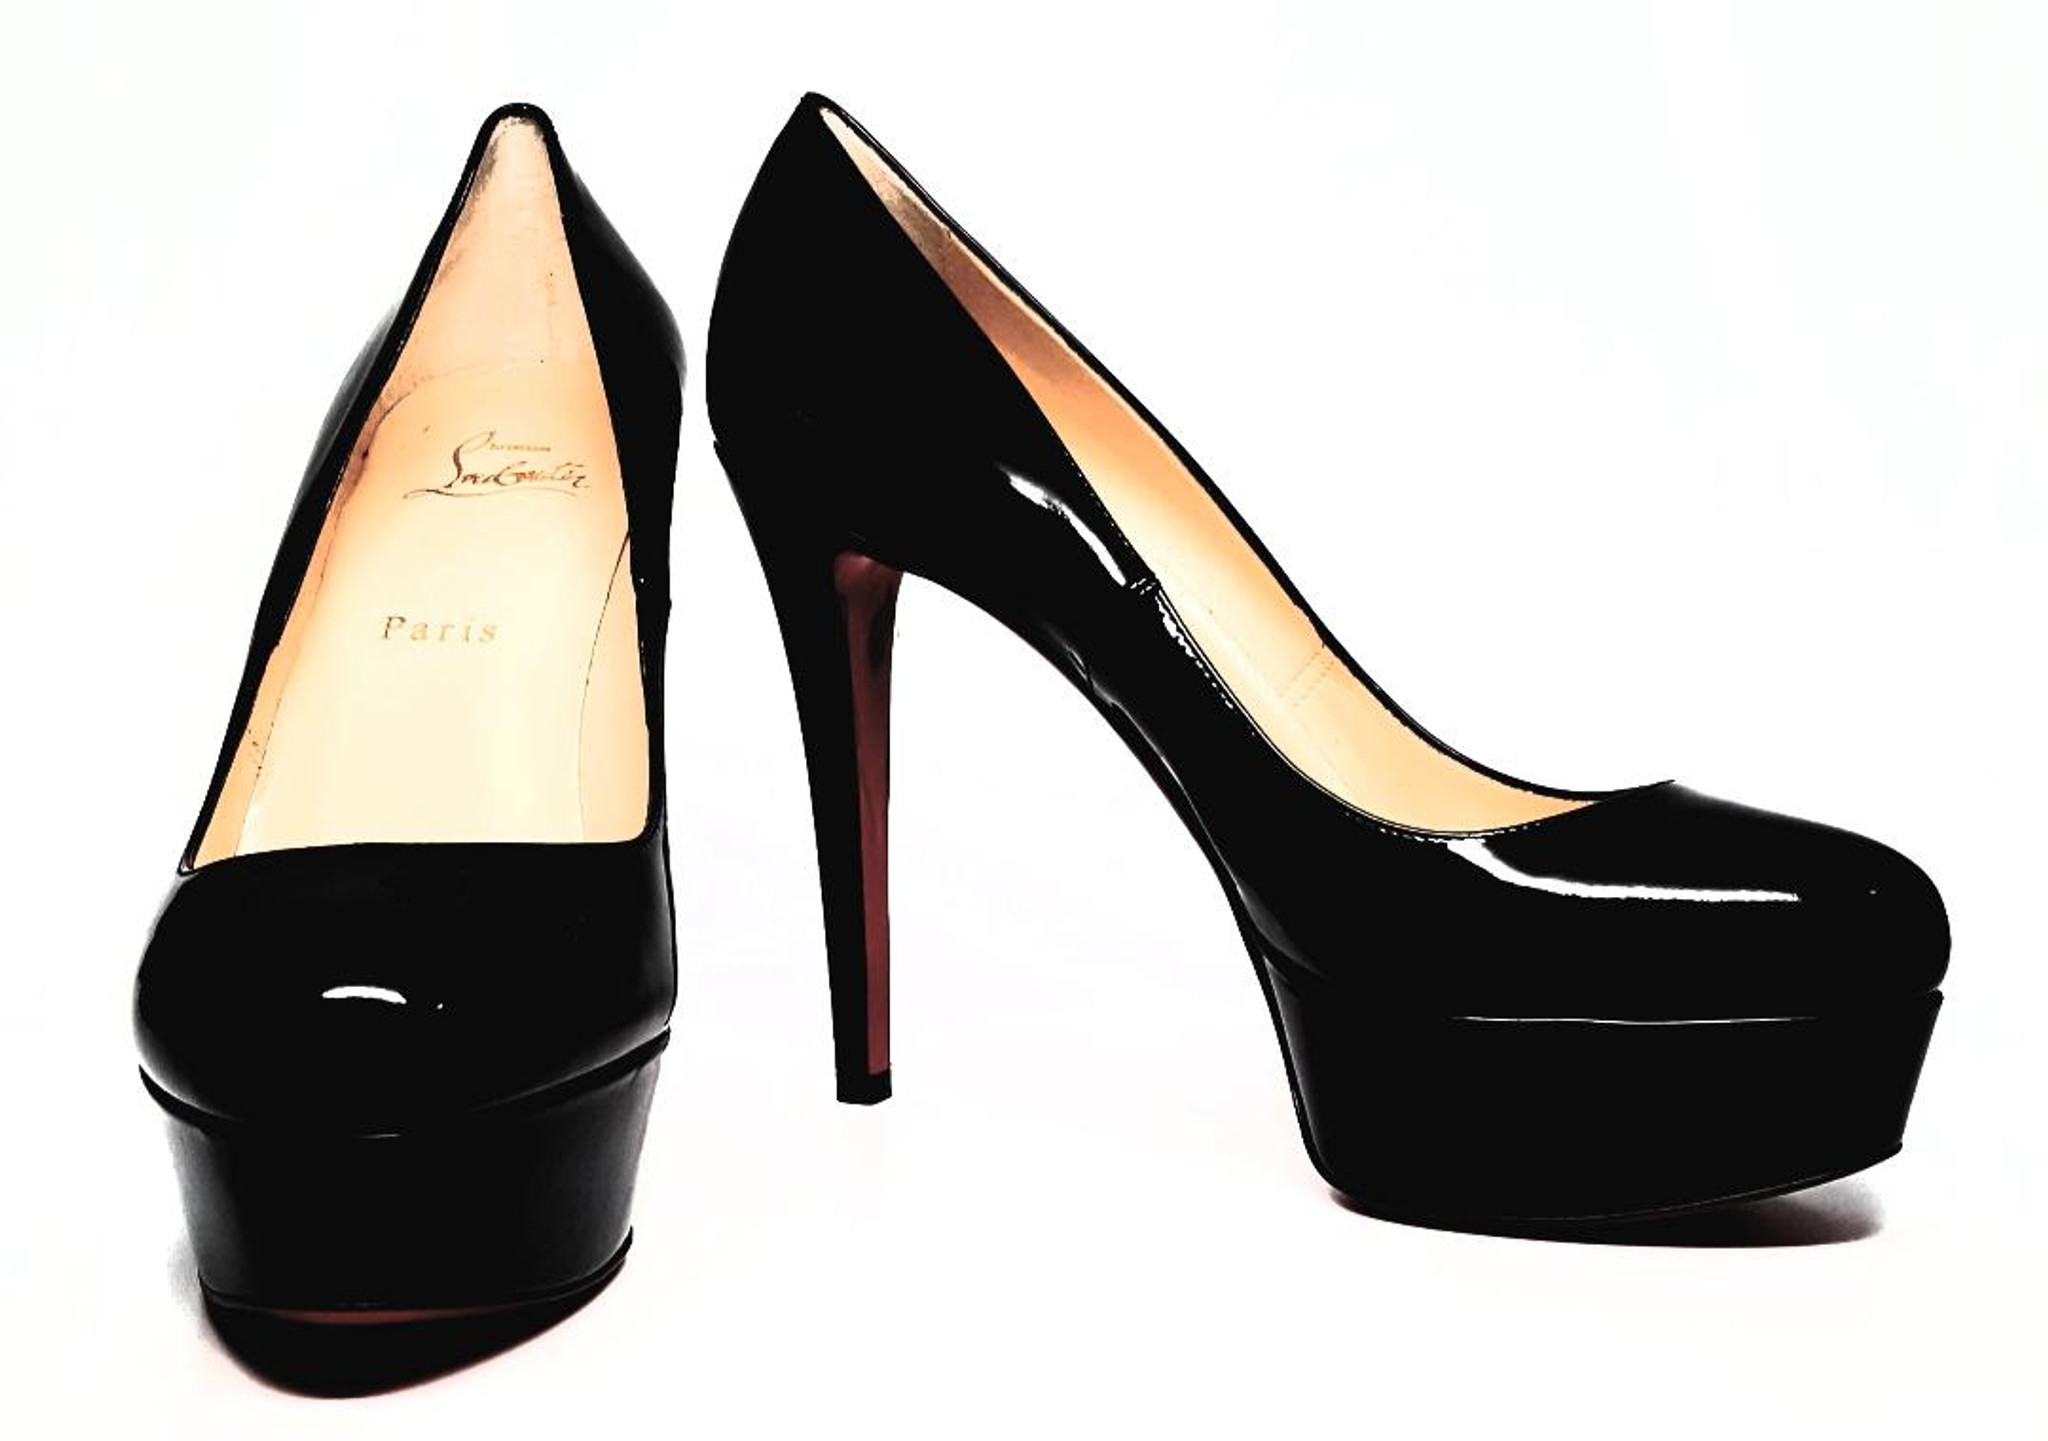 reputable site c5be0 de838 Christian Louboutin Black Patent Leather Bianca Heel - Size US 8 - New